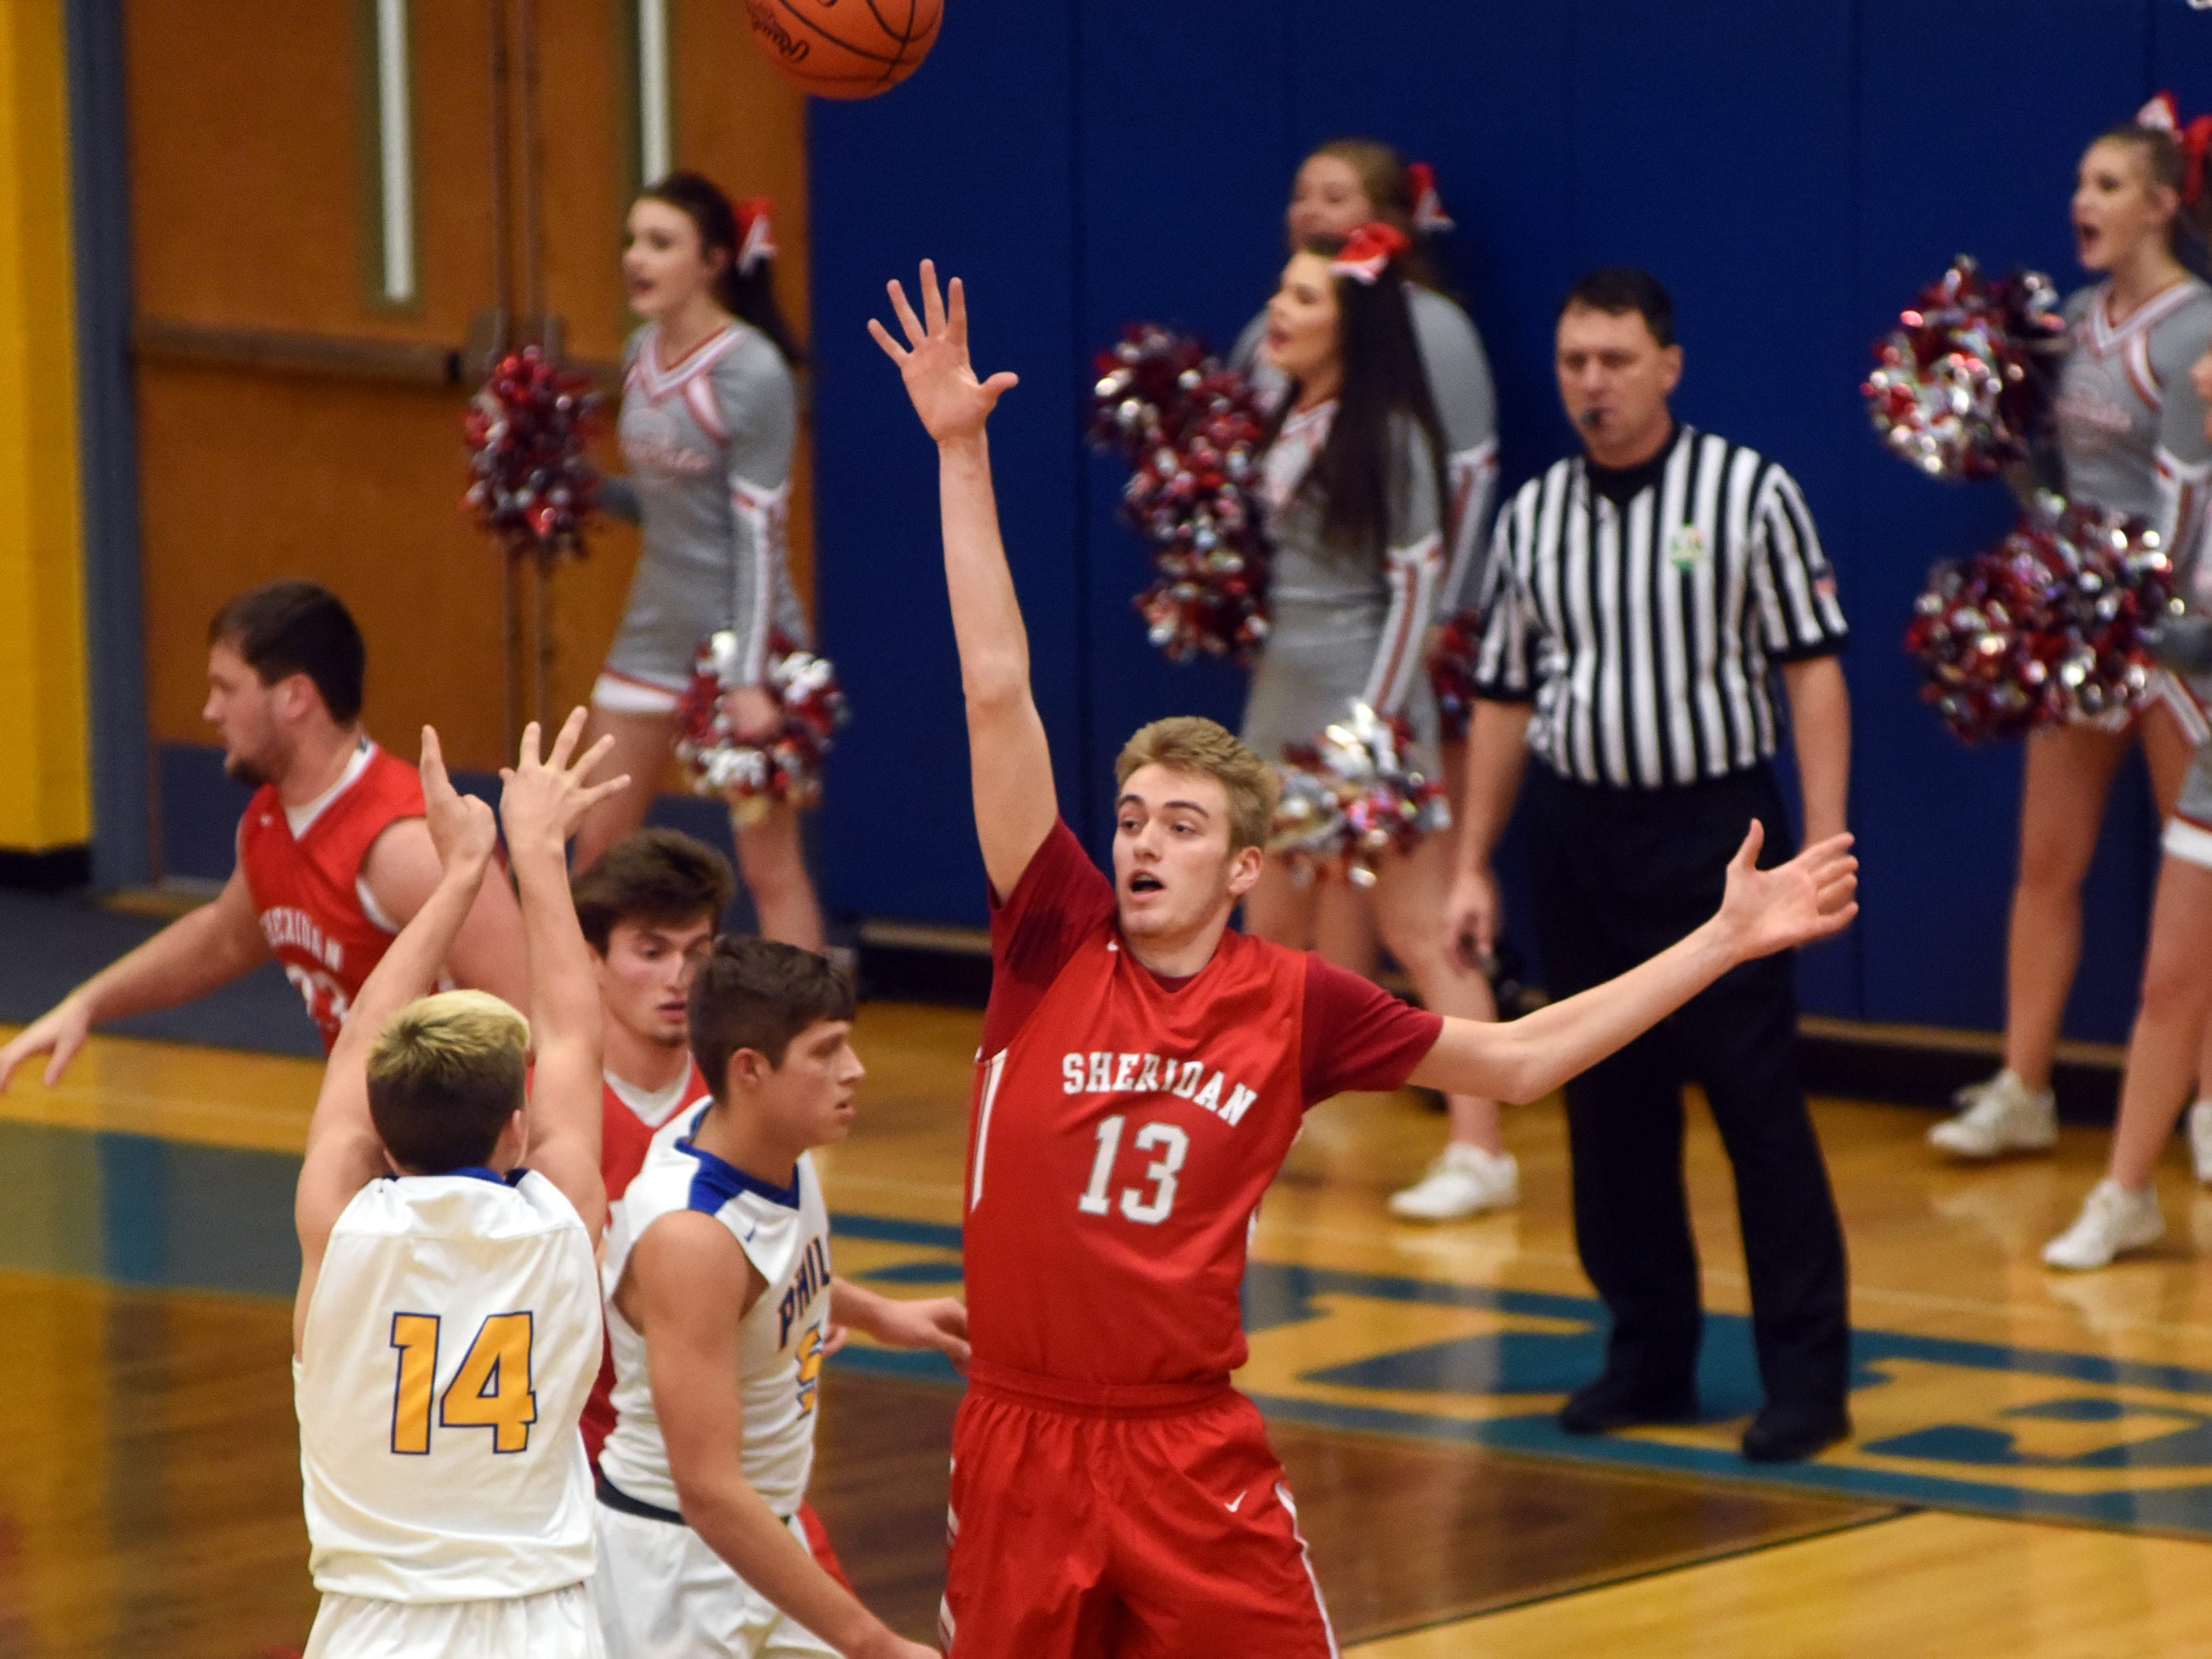 Philo's Owen Smith shoots over Sheridan's Michael Jordan.